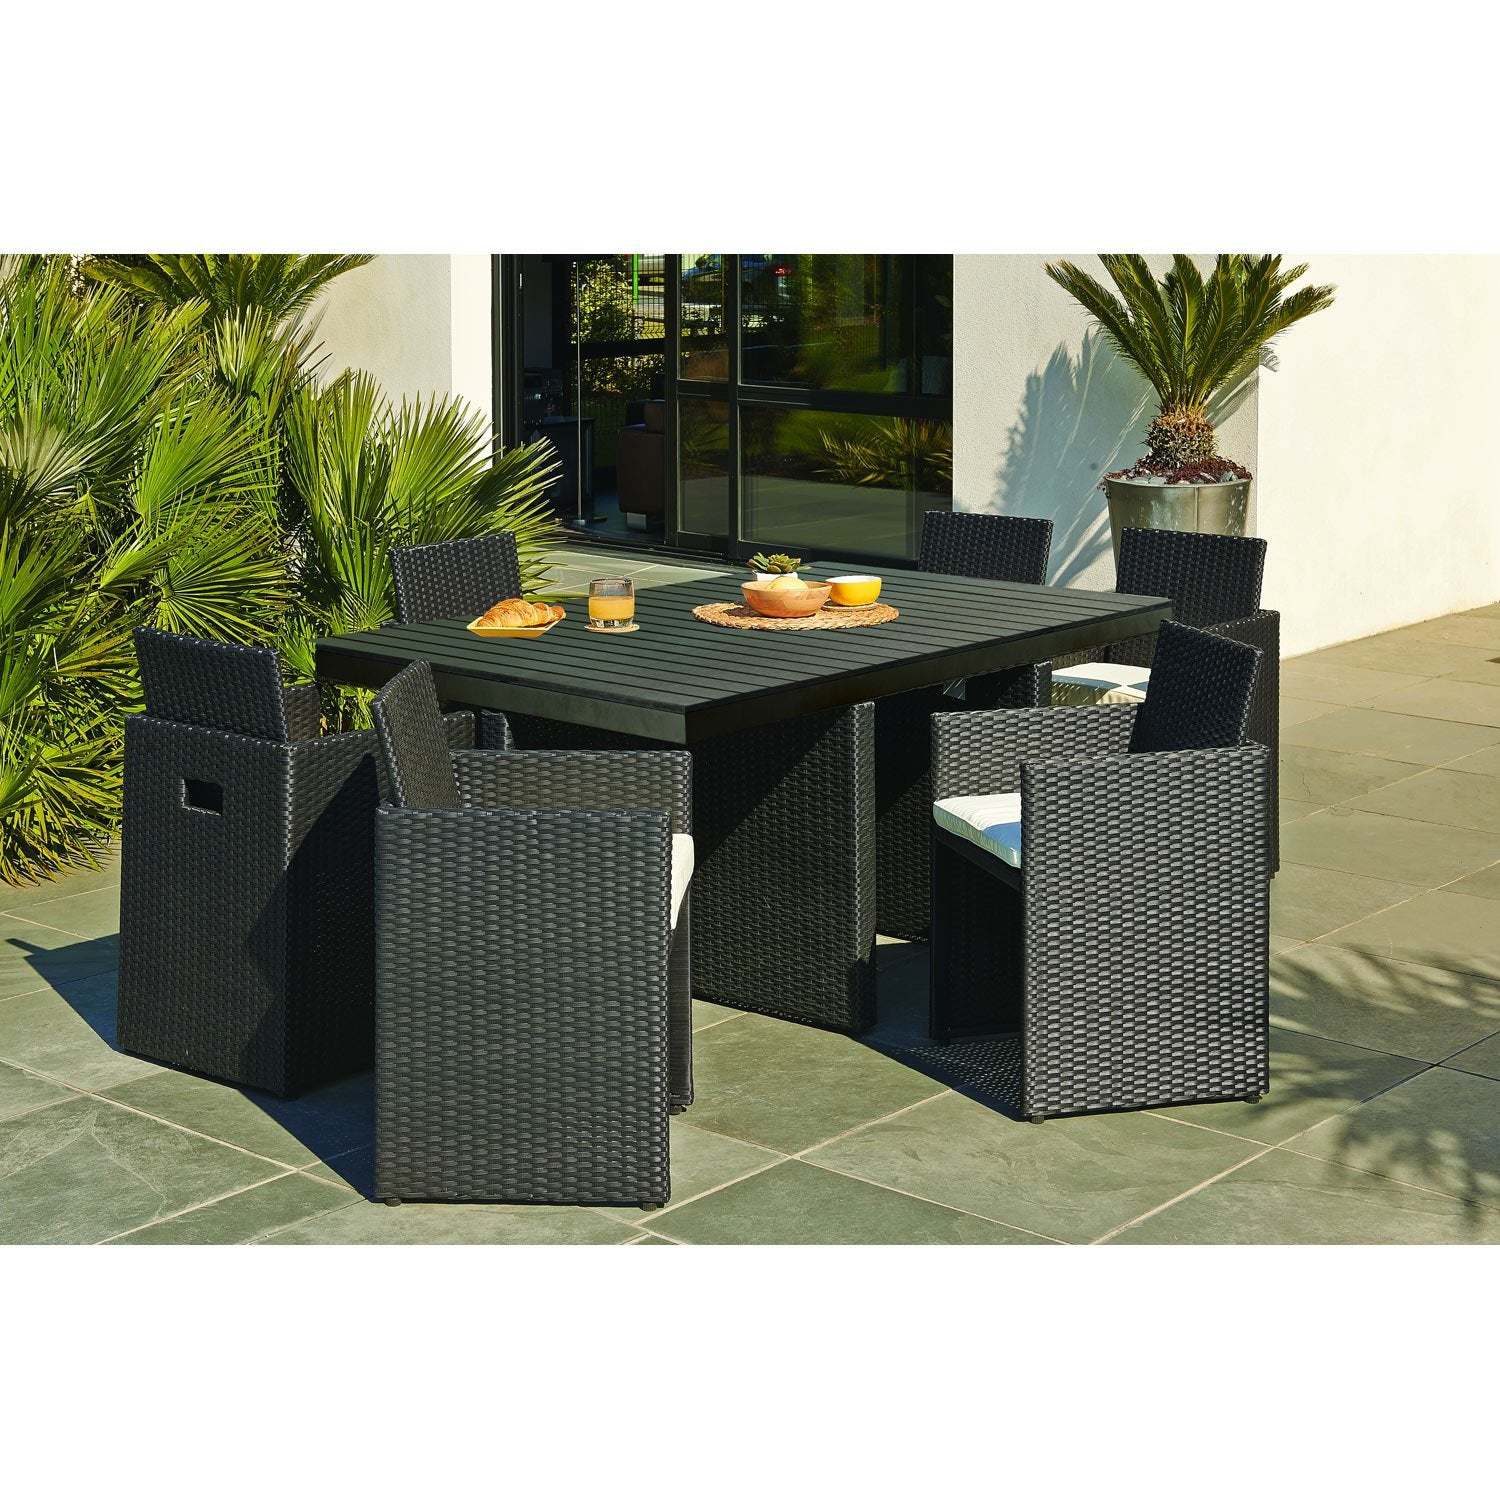 Salon de jardin encastrable r sine tress e noir 1 table for Casetas para jardin leroy merlin